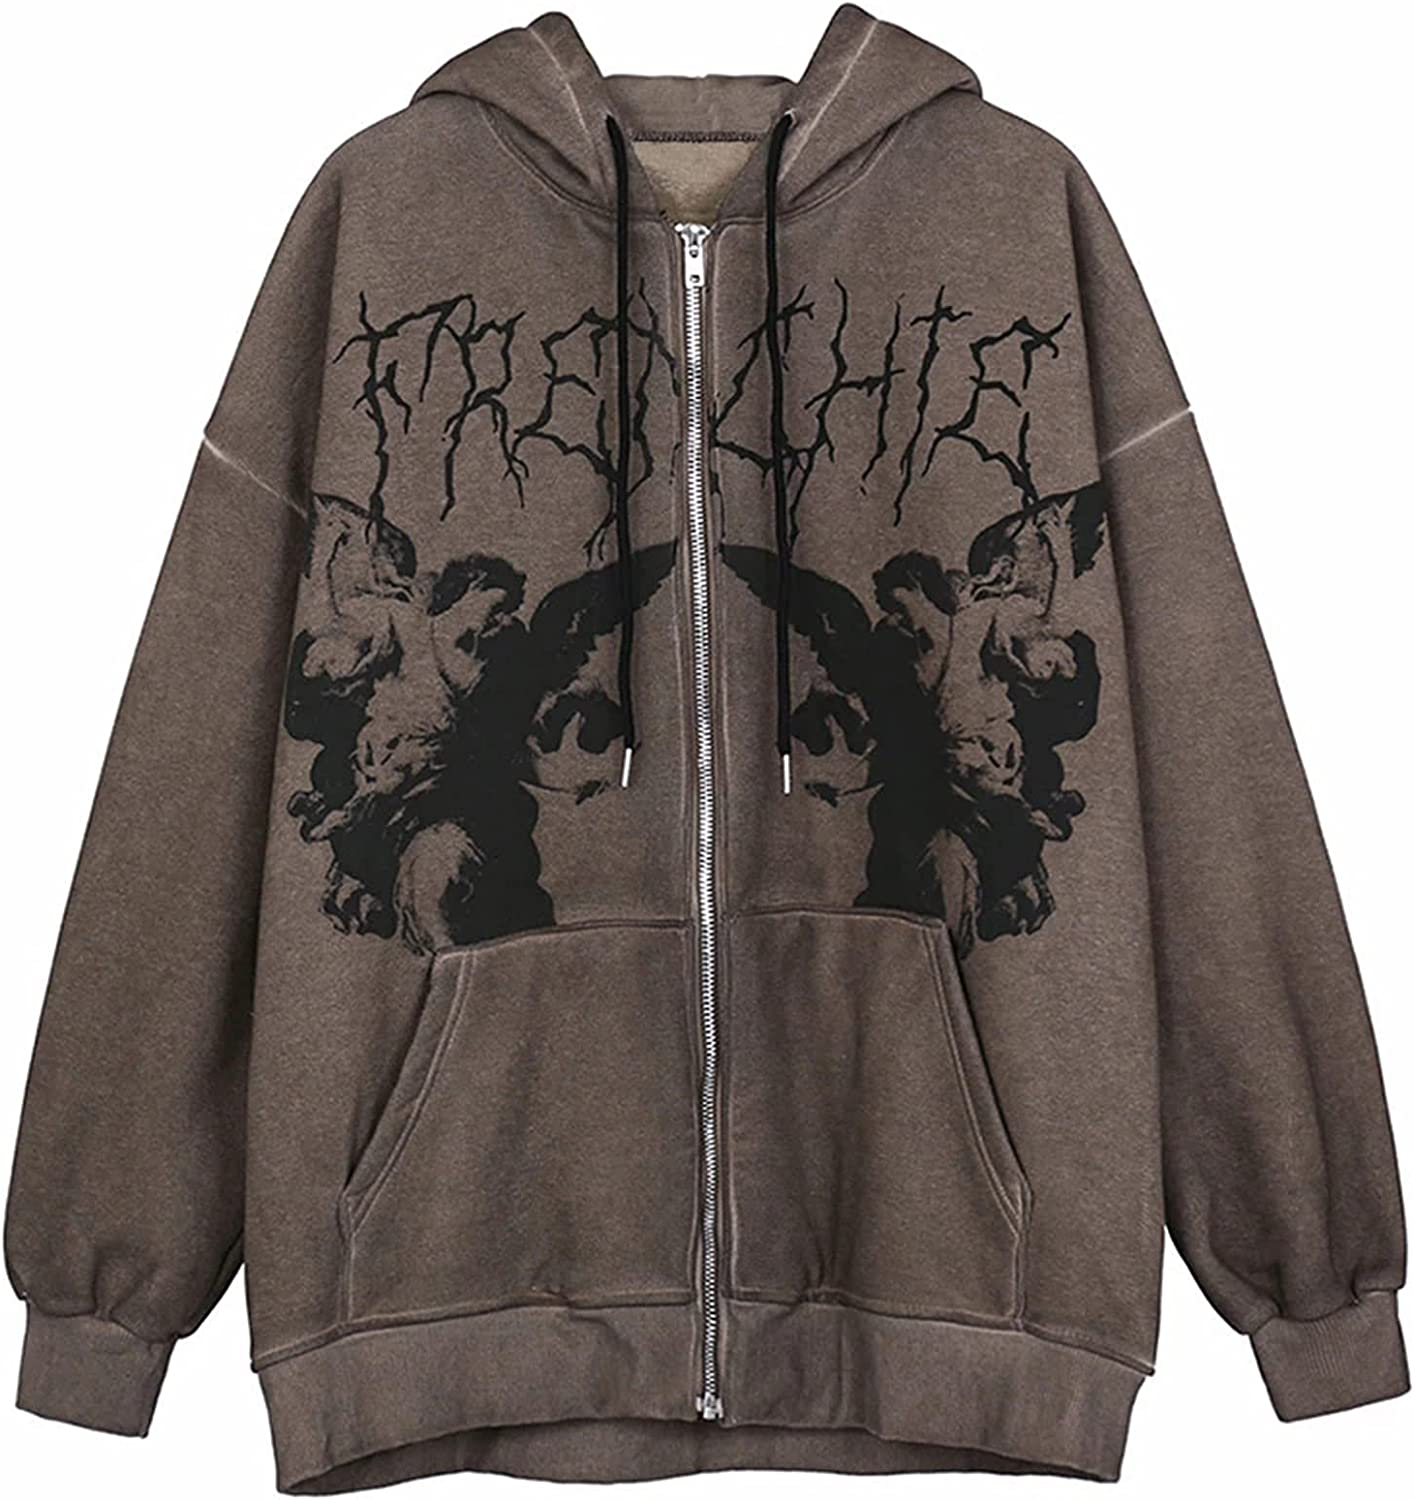 Womens Y2k Hoodie Long Sleeve Graphic Harajuku E Girl Vintage Tops Sweatshirt Zip Up Gothic Hooded Top with Pockets